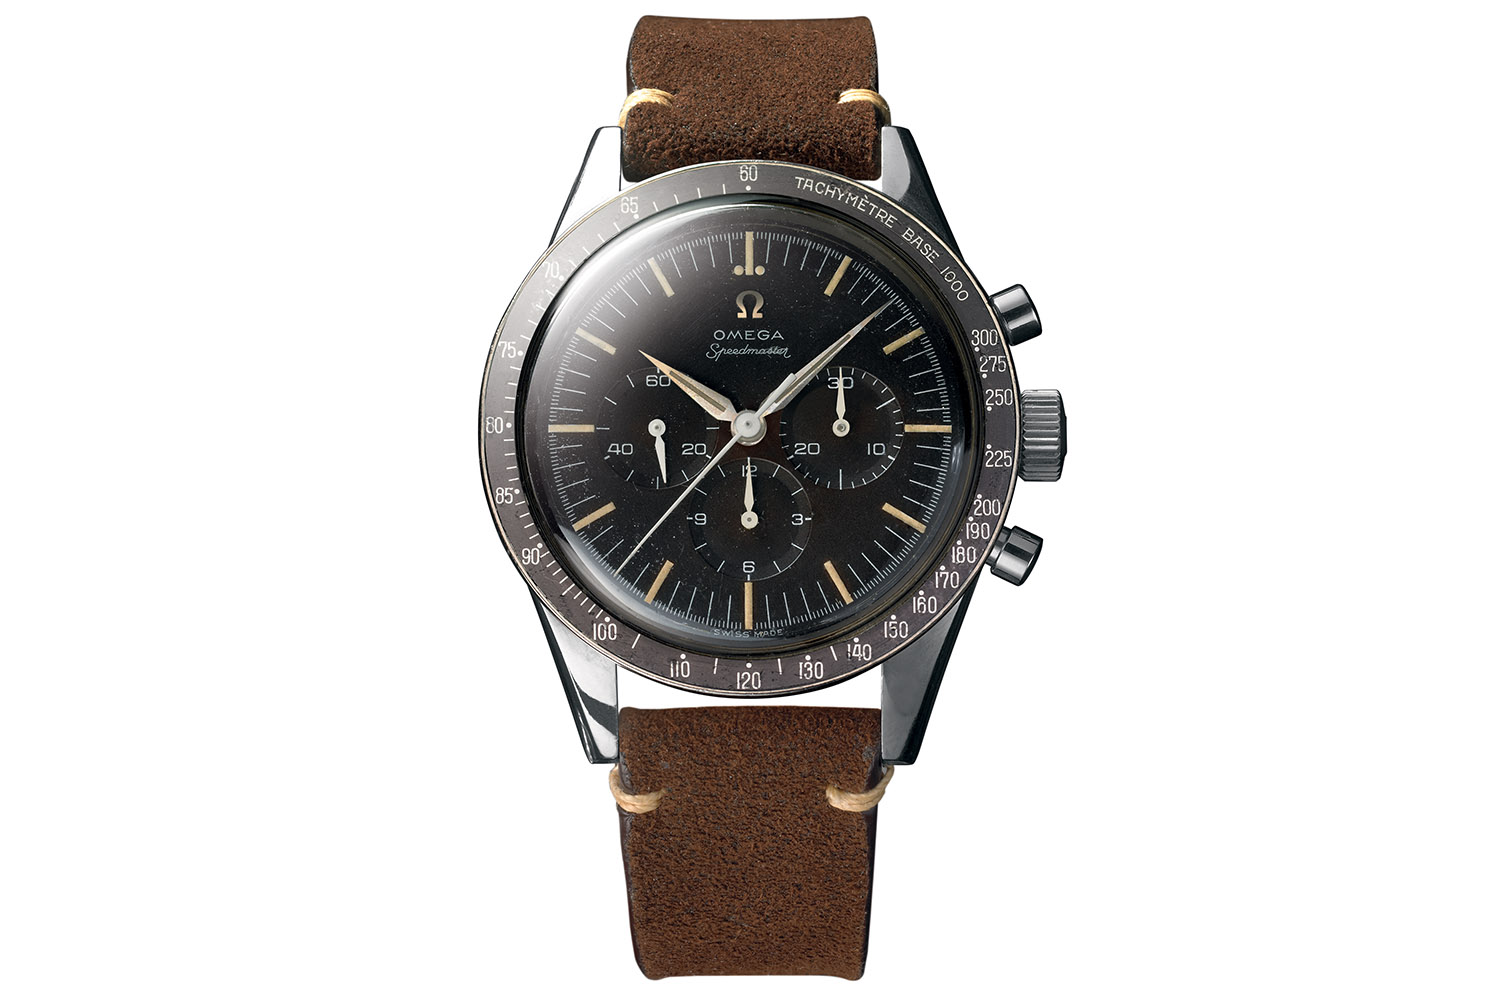 Omega Speedmaster CK2998 alpha hands - first omega in space 1958